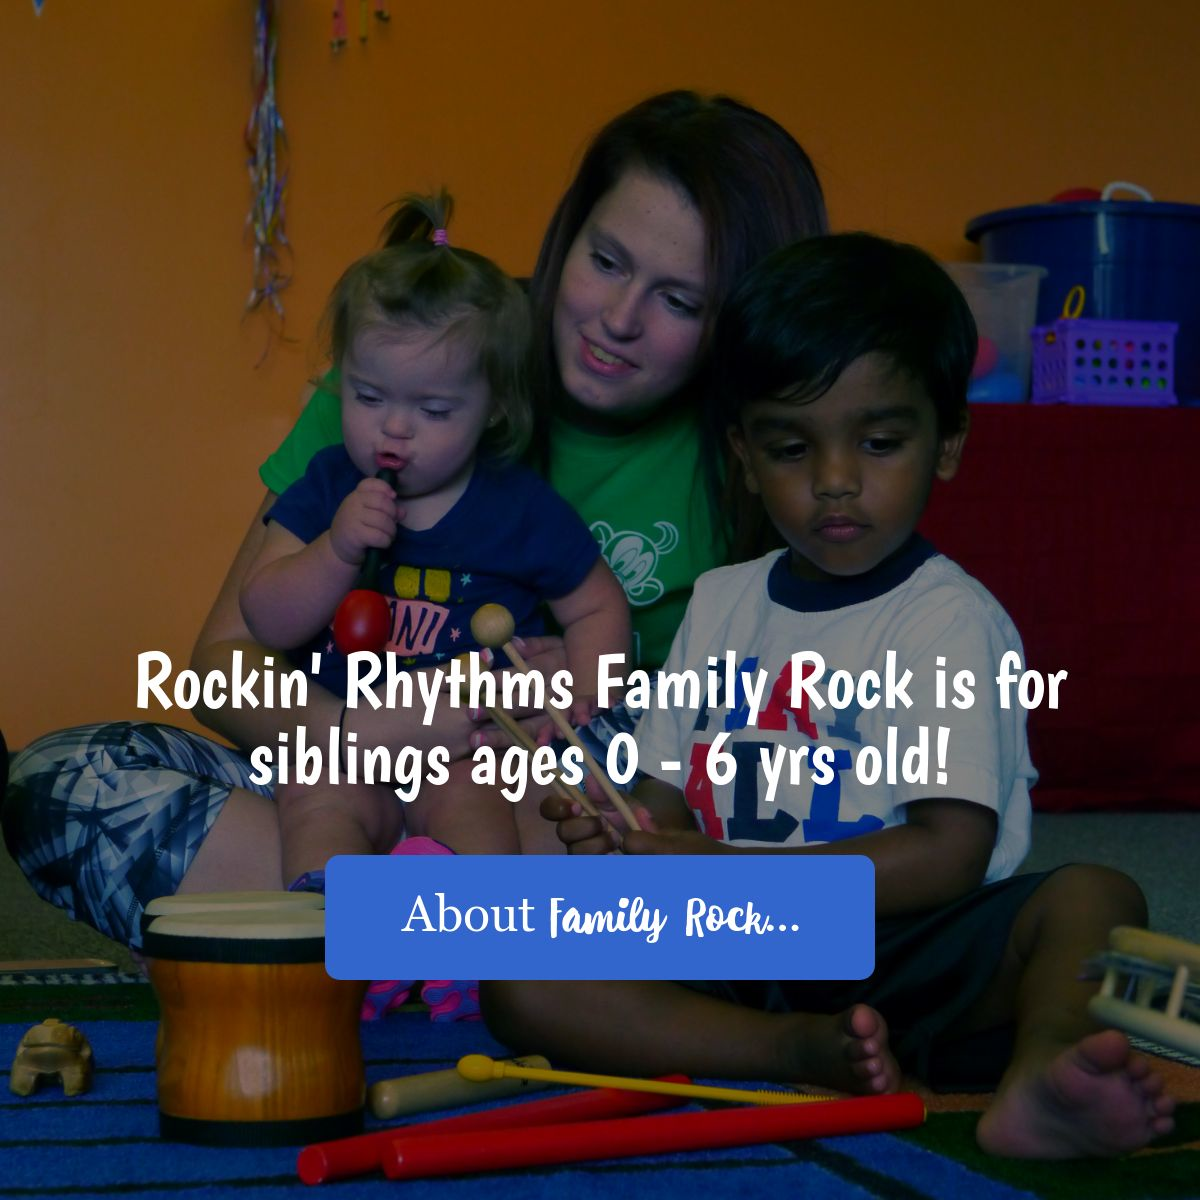 Rockin' Rhythms Family Rock is for siblings 3-6 years old. About Family Rock...